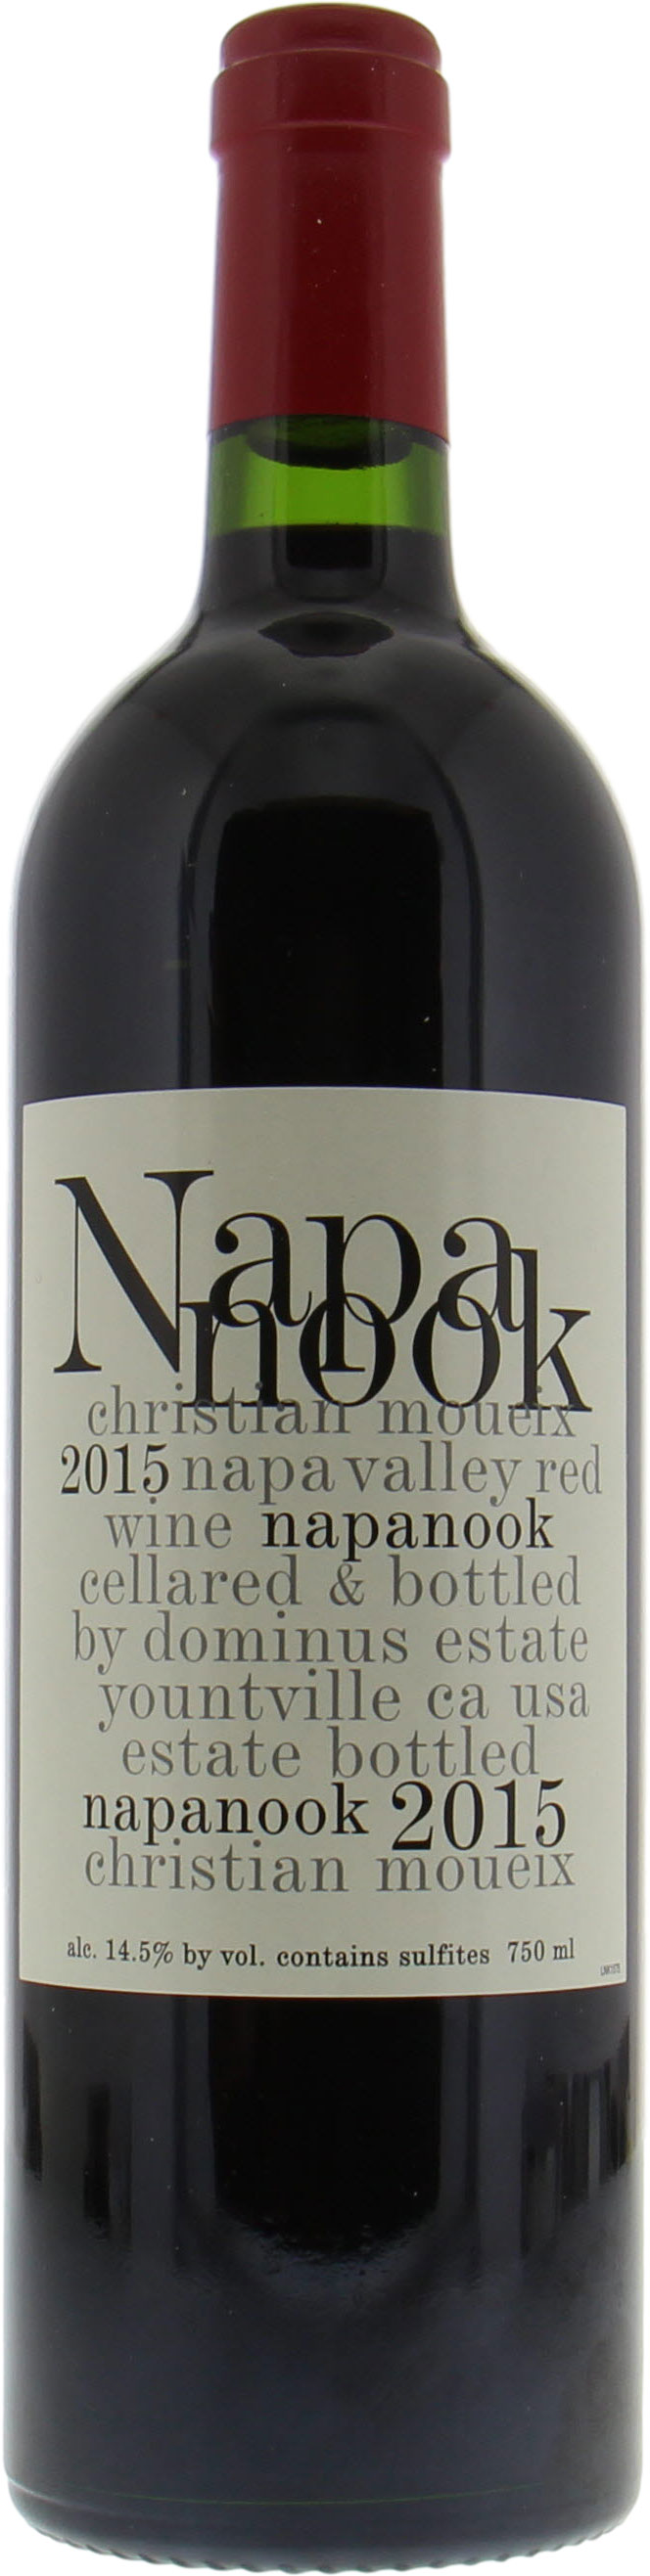 Christian Moueix - Dominus Napanook 2015